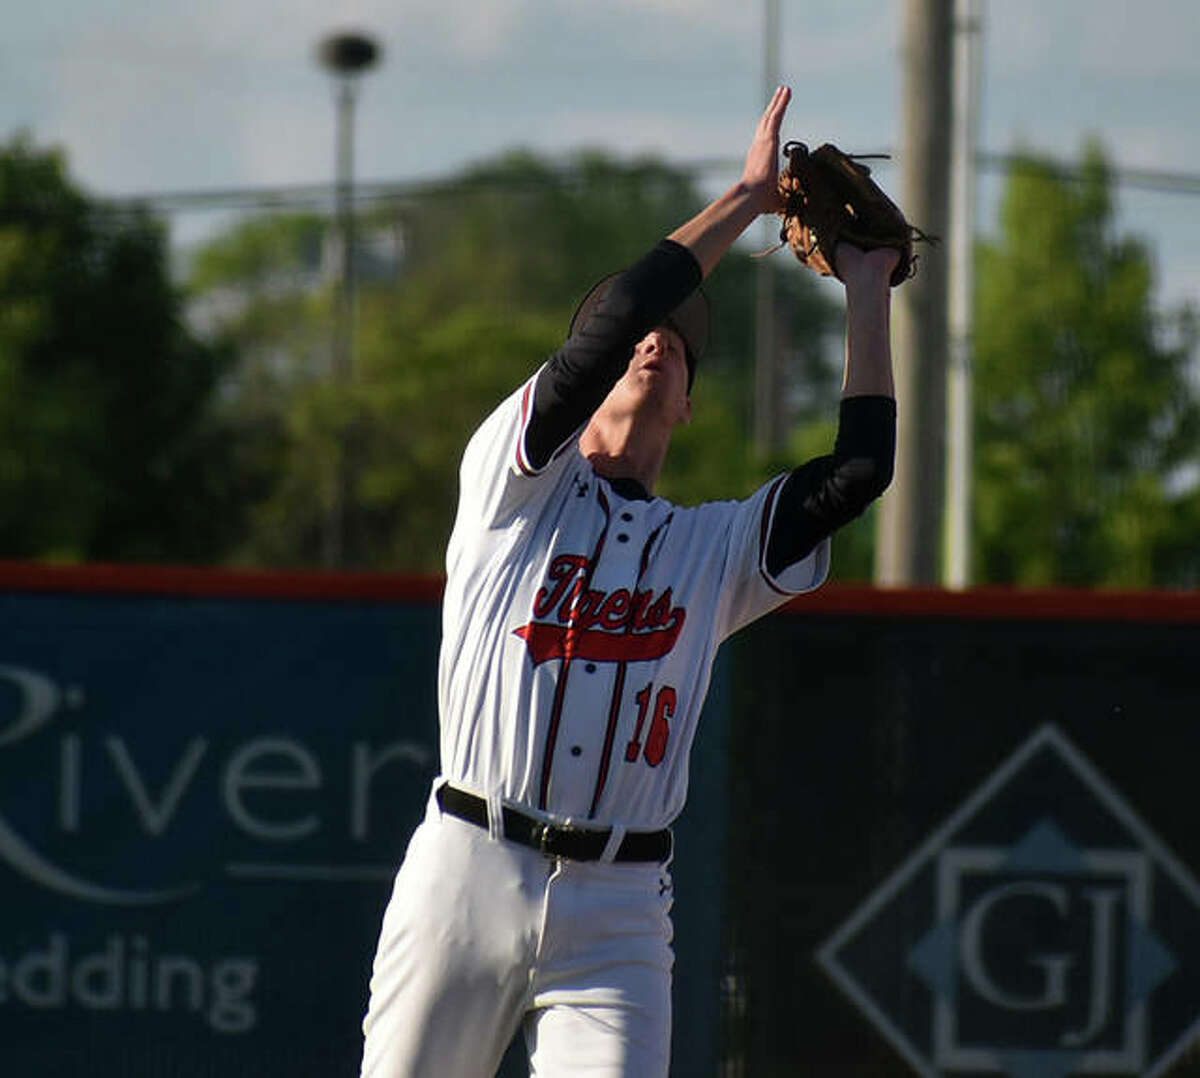 Edwardsville third baseman Trent Schroeder catches a fly ball in the sixth inning against Alton.